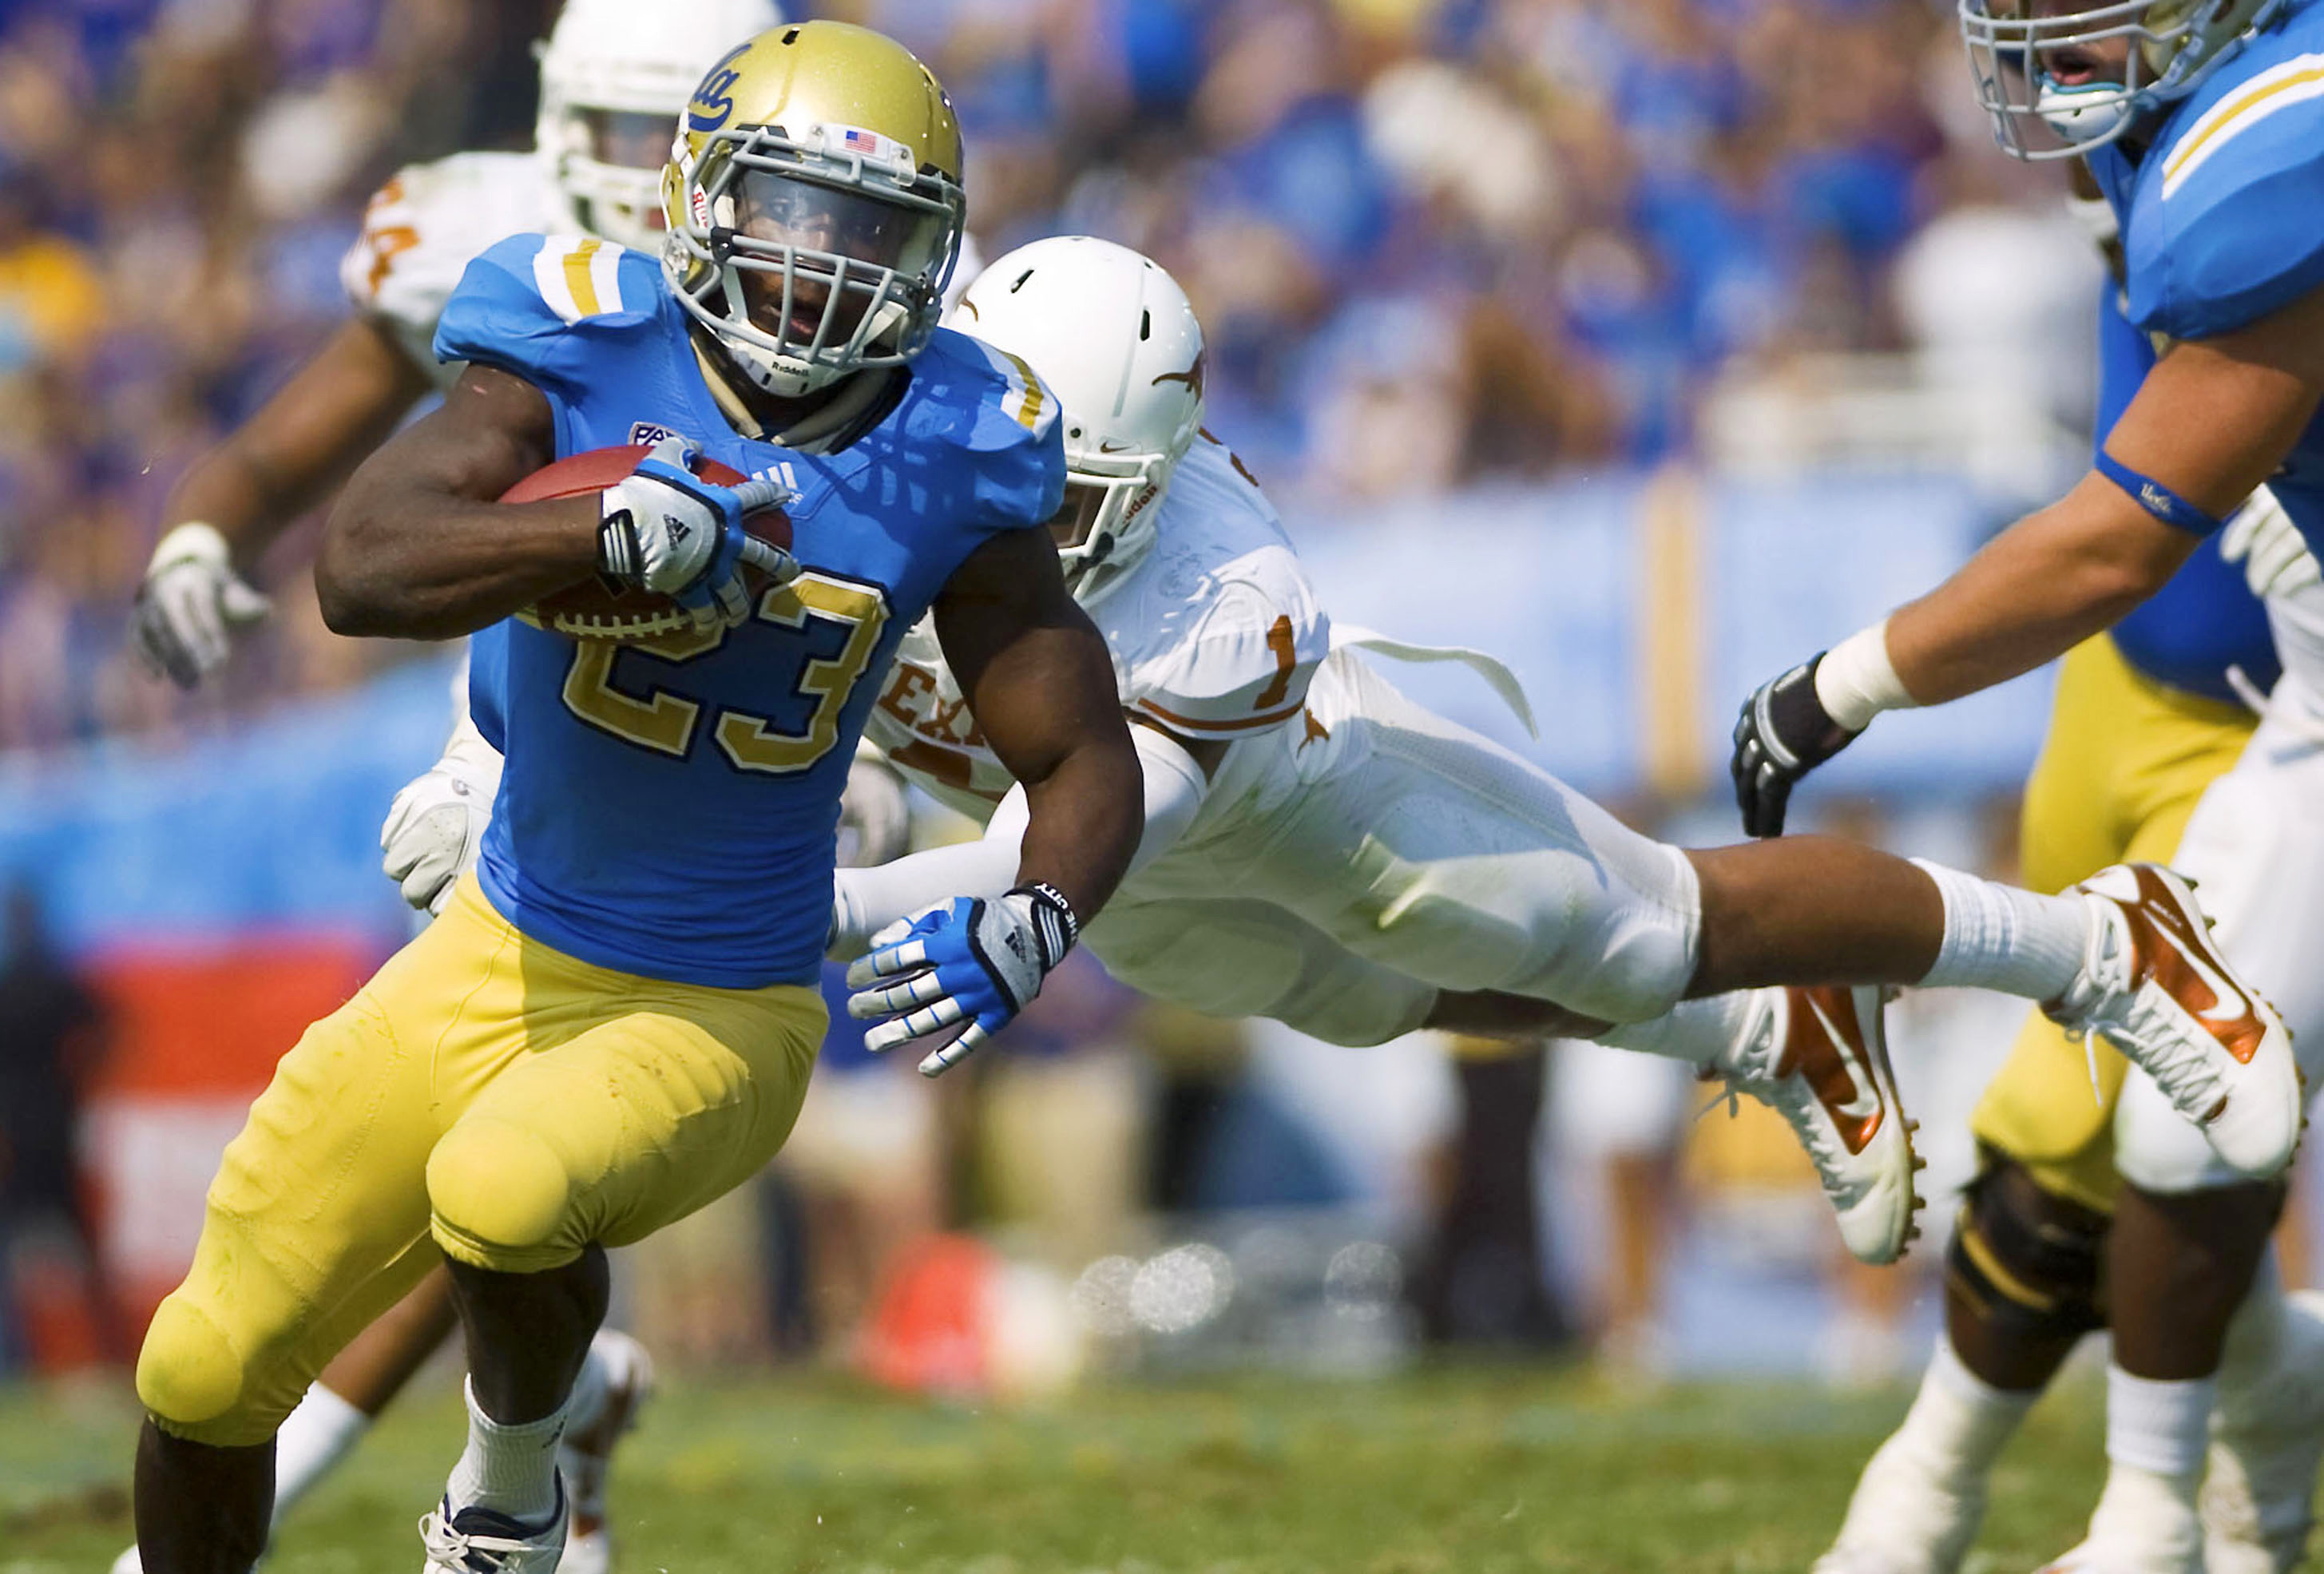 Res: 2910x1971, Rising redshirt senior running back Johnathan Franklin, seen here during  UCLA's game against Texas last